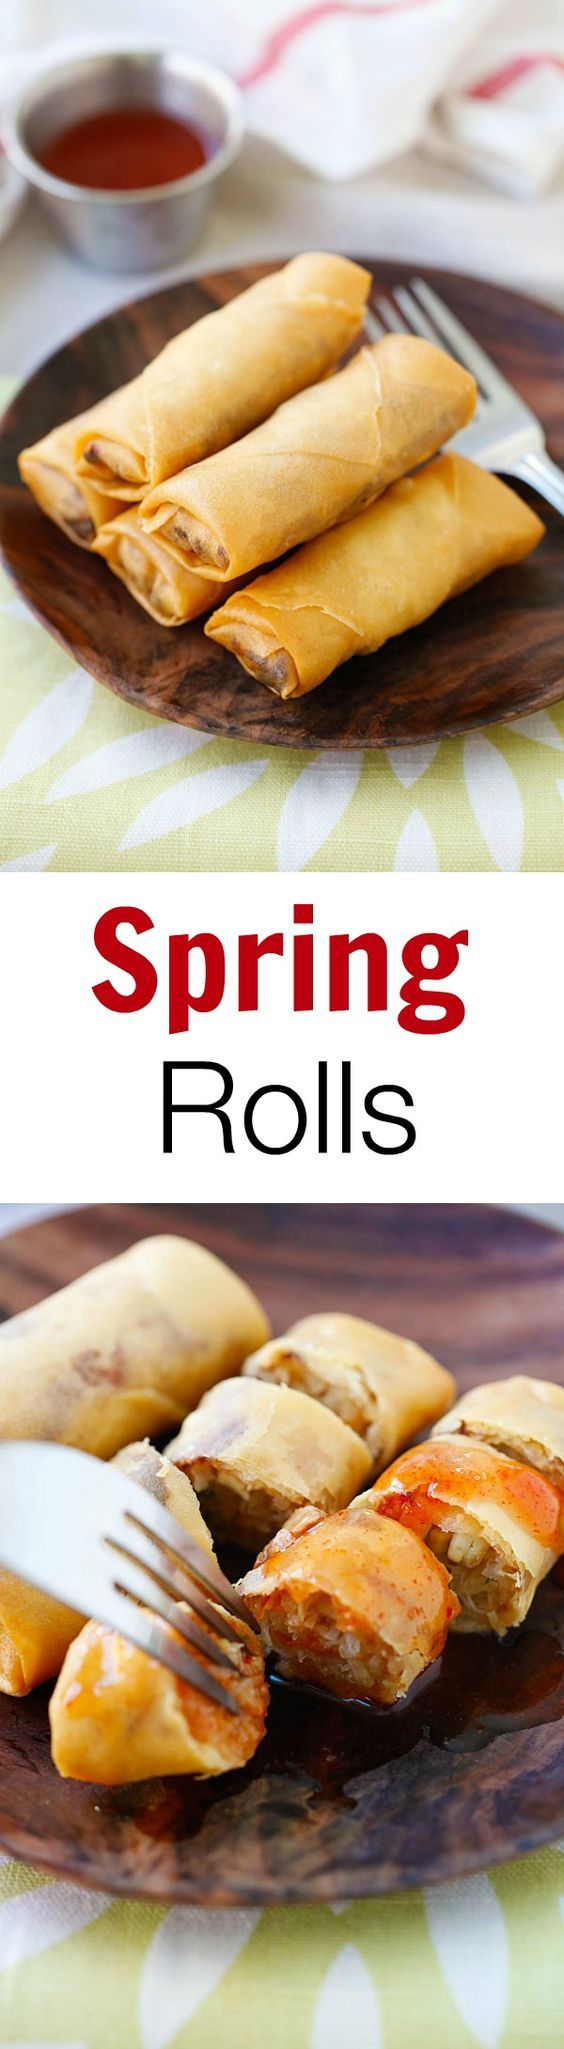 Fried spring rolls – the best and crispiest spring rolls recipe ever filled with vegetables and deep-fried to golden perfection